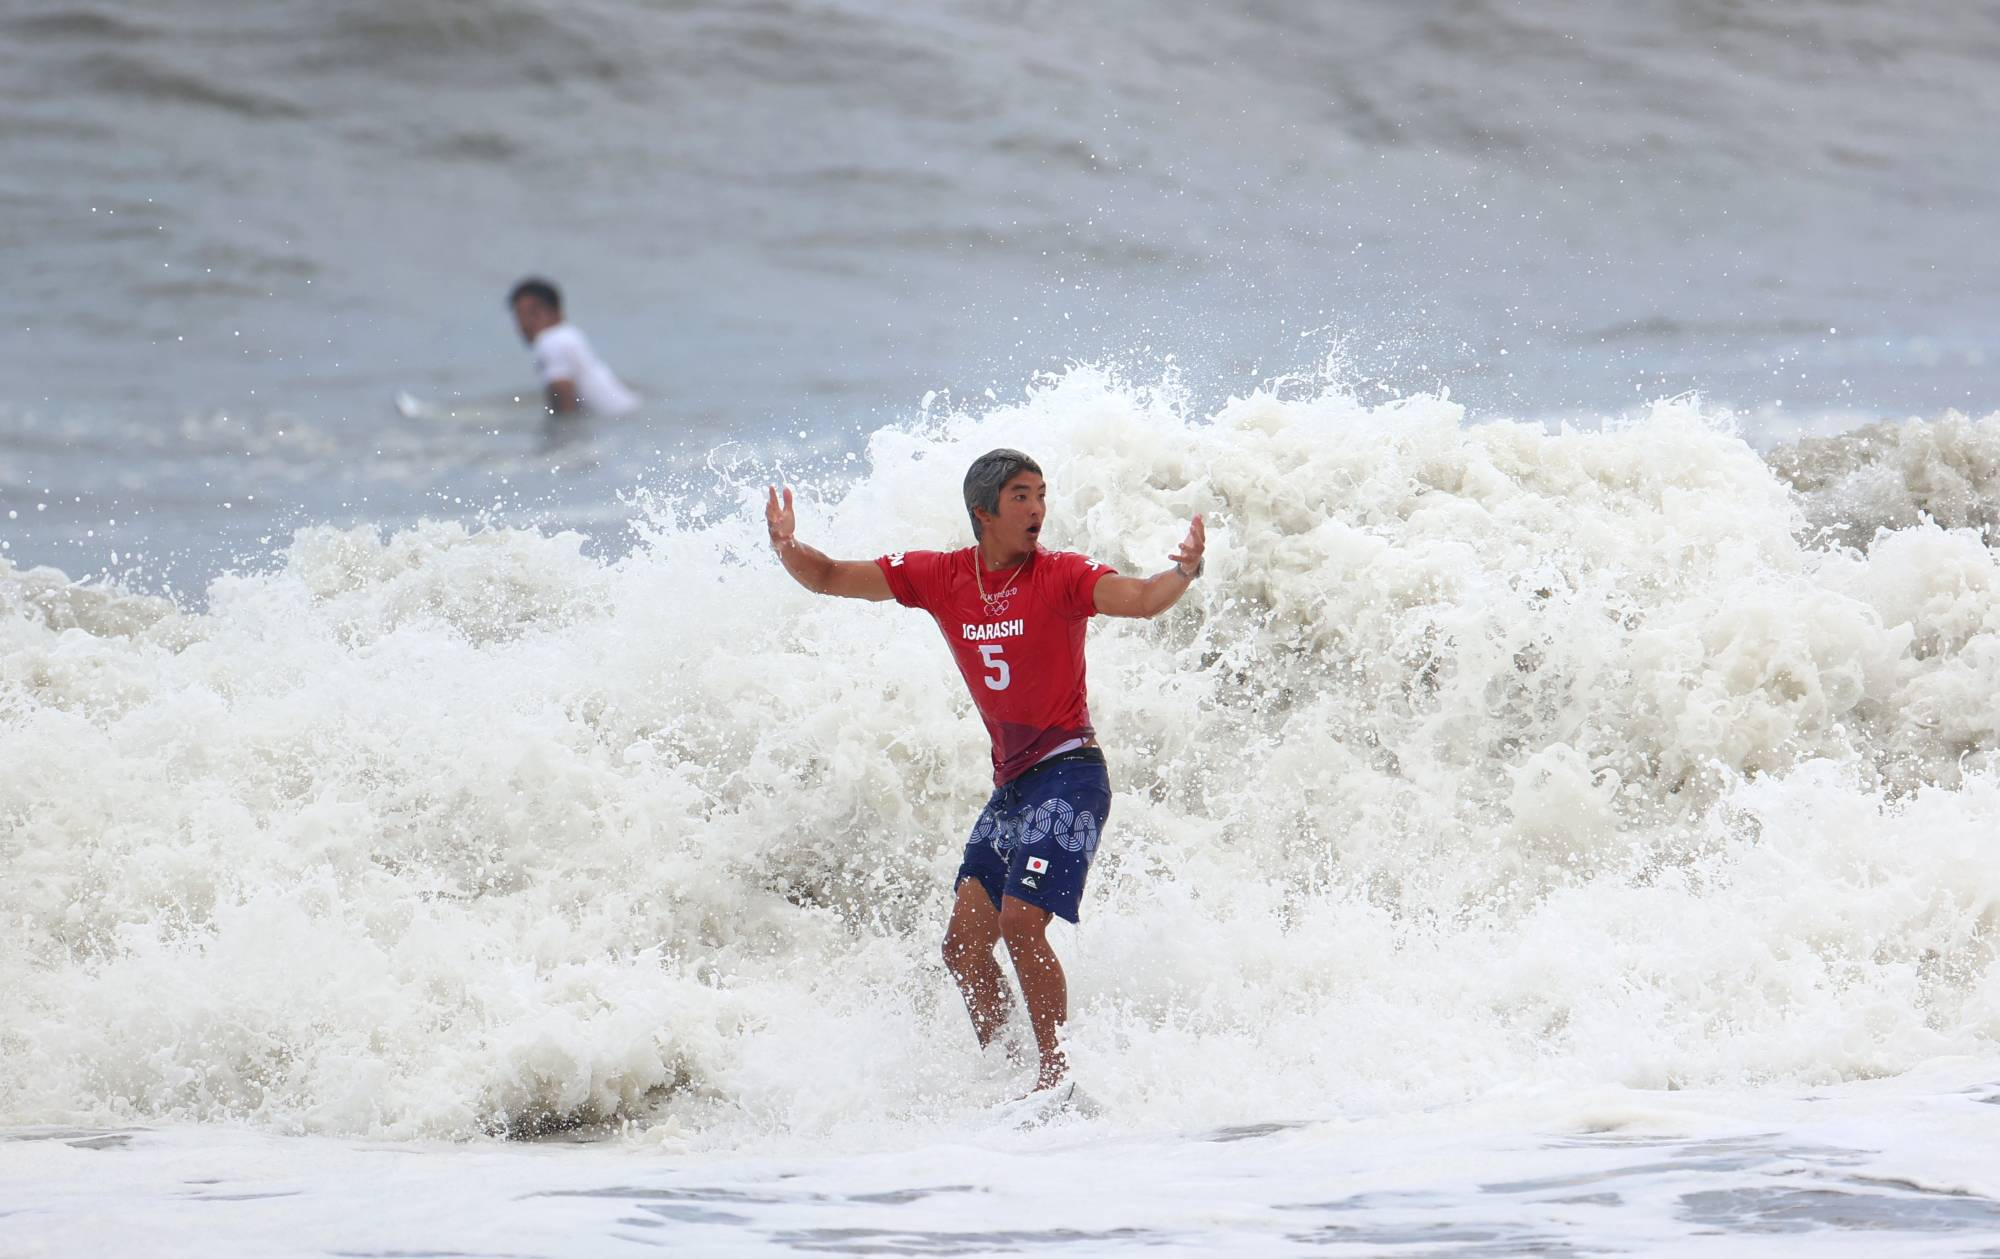 Kanoa Igarashi of Japan celebrates with his opponent, Gabriel Medina of Brazil, in the background.   REUTERS